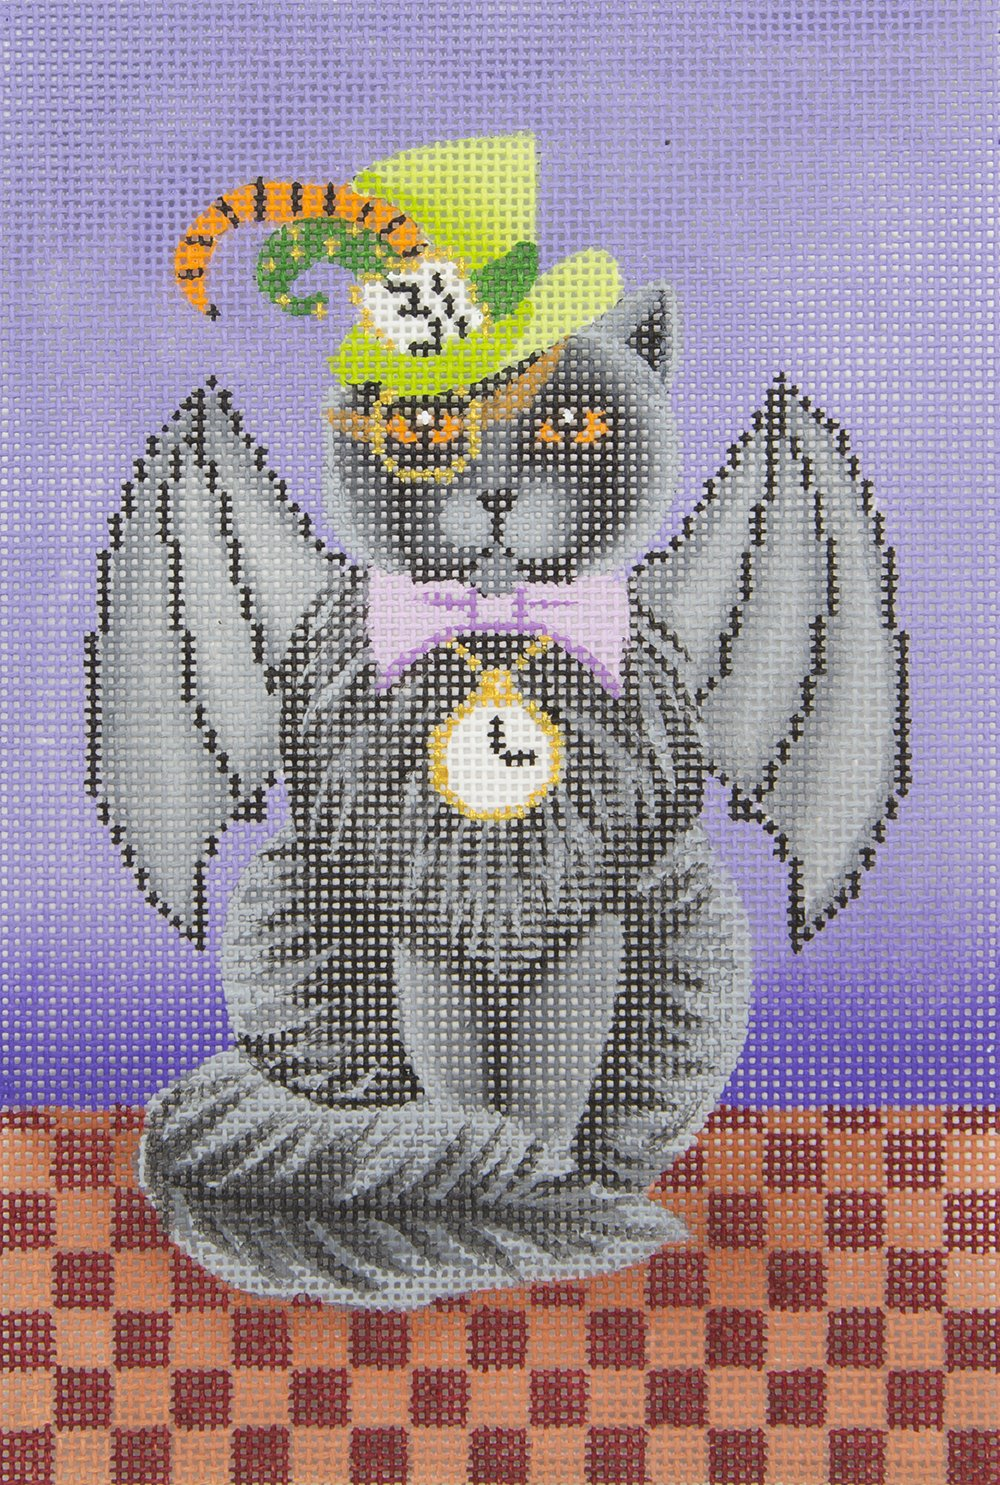 B431 Steampunk Cat with Stitch Guide Brenda Stofft